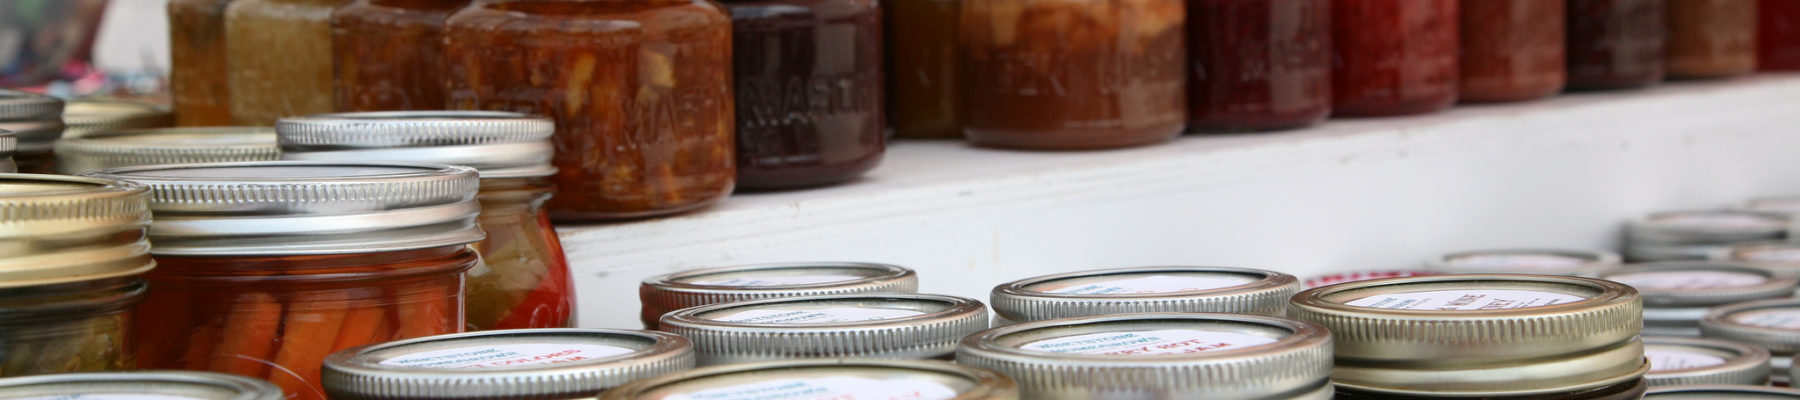 Midtown Farmers' Market Preserves